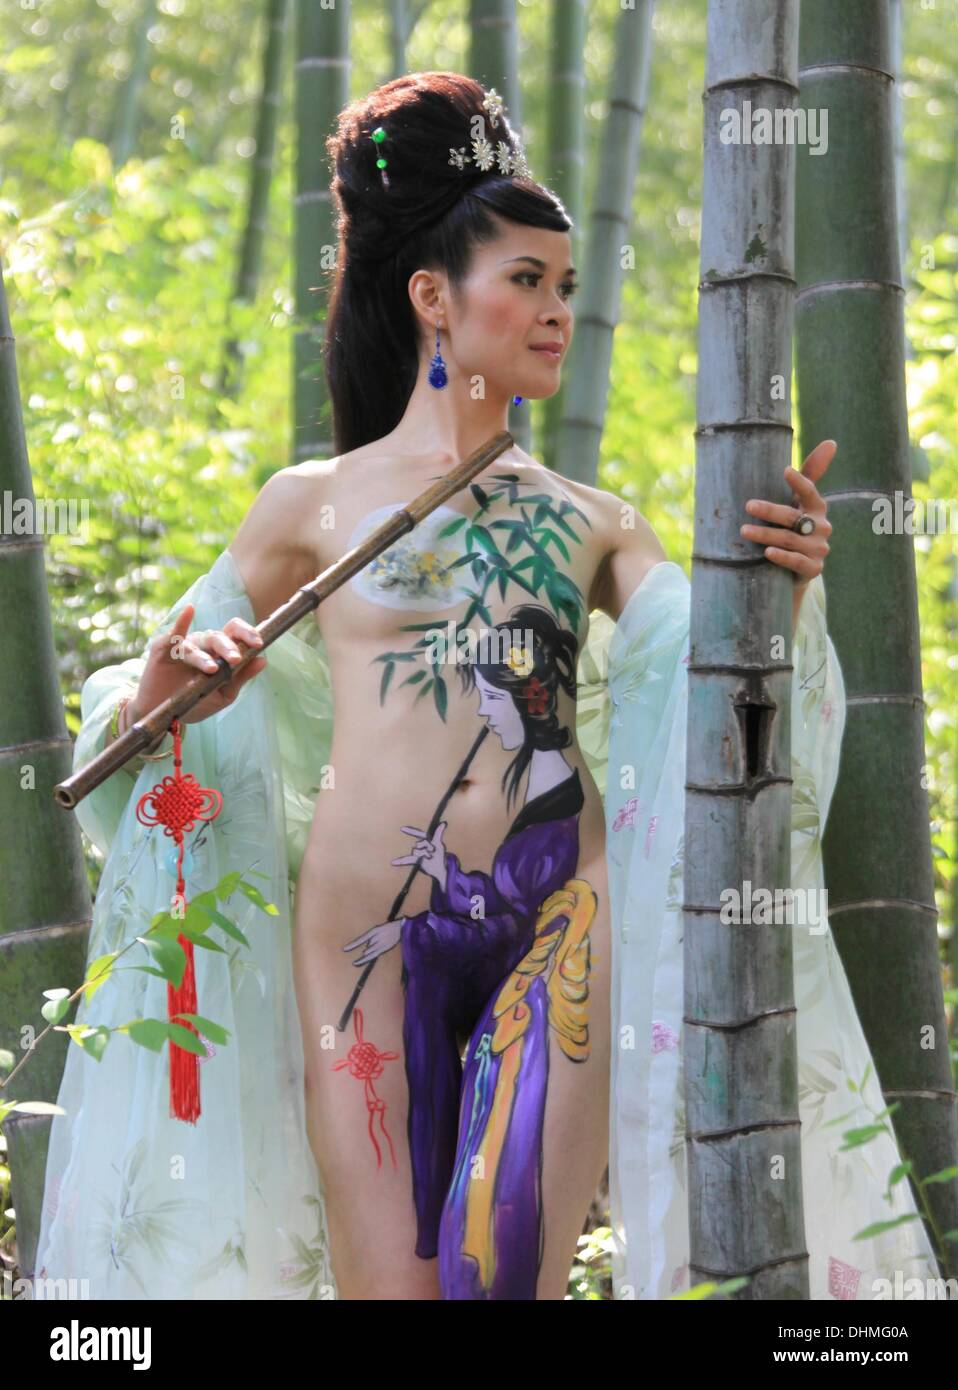 Body Painting A Body Art Painting Model Shows Off Her Creativity Stock Photo Alamy